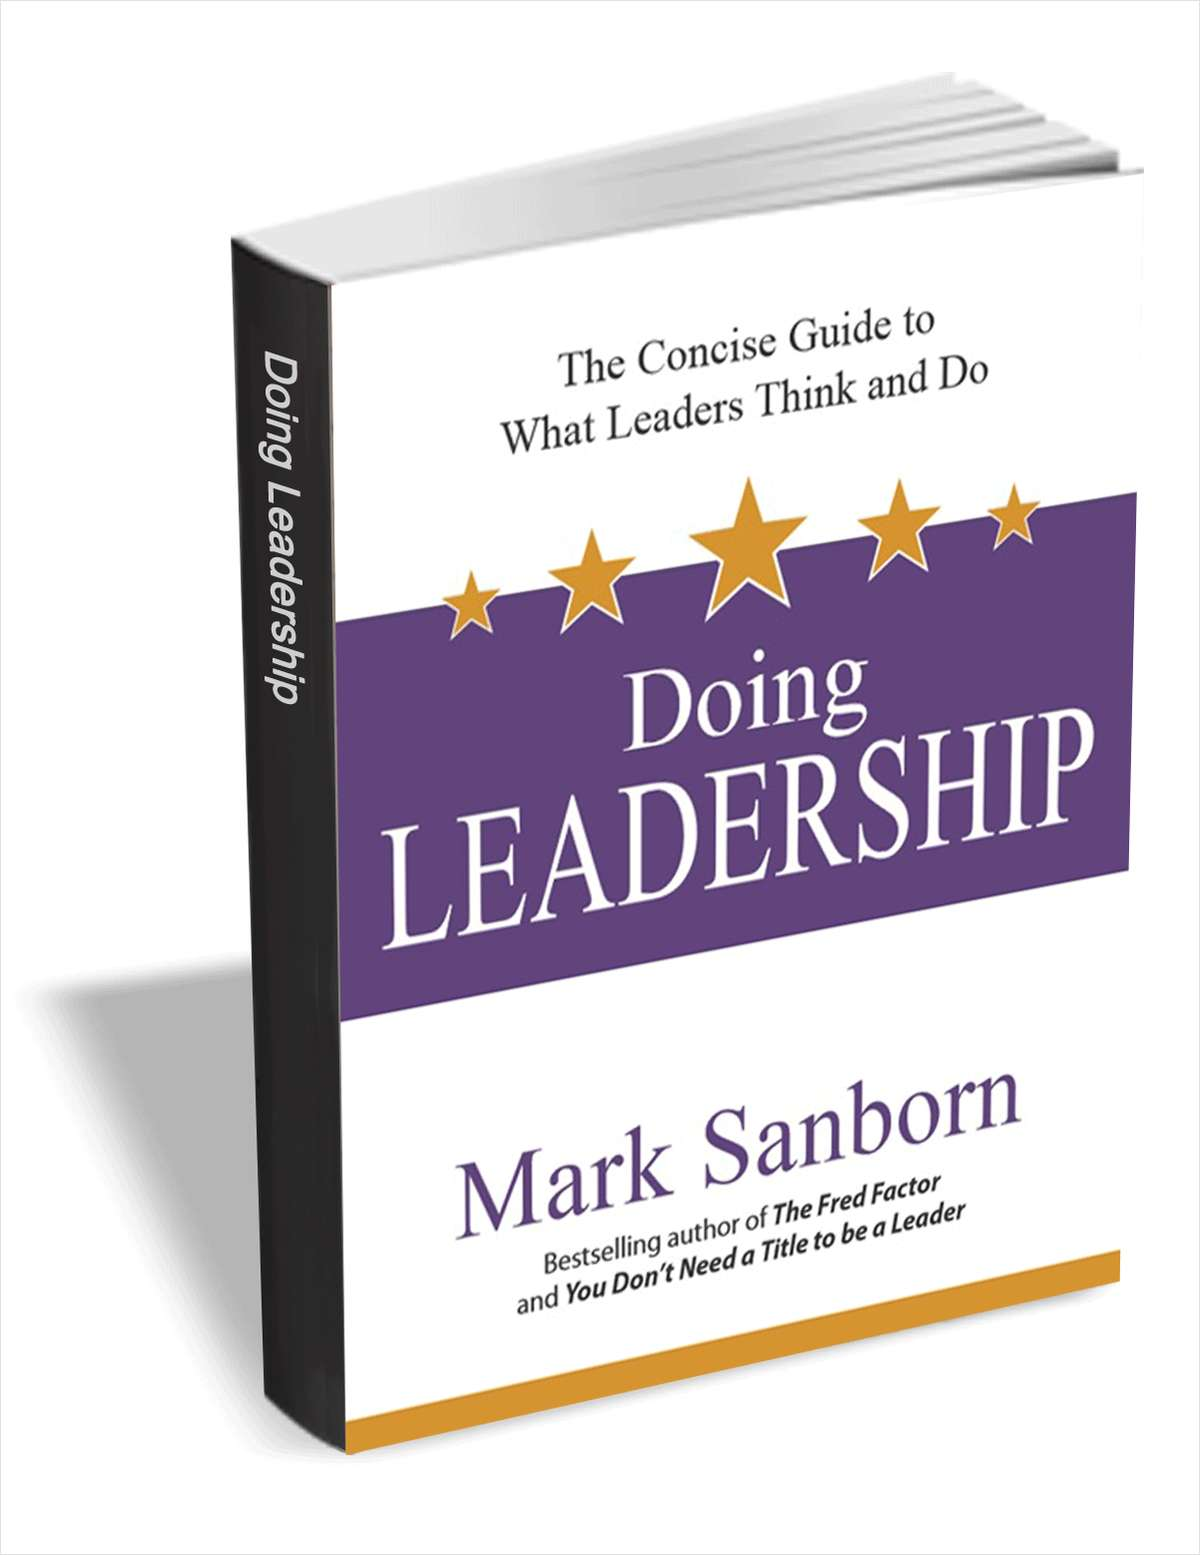 Doing Leadership - The Concise Guide to What Leaders Think and Do